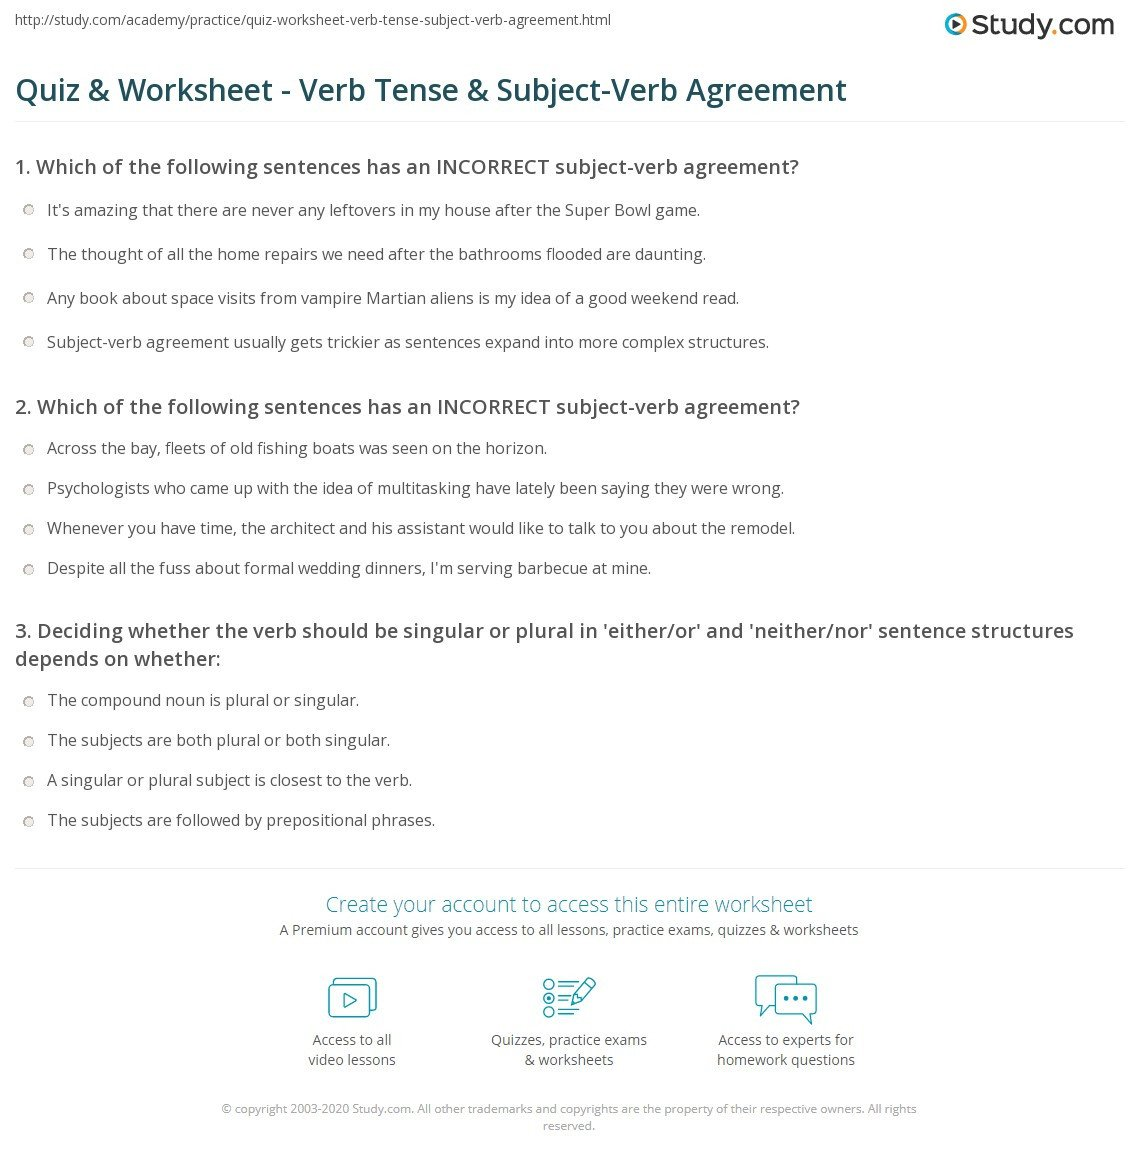 Tense Agreement Worksheet Quiz & Worksheet Verb Tense & Subject Verb Agreement